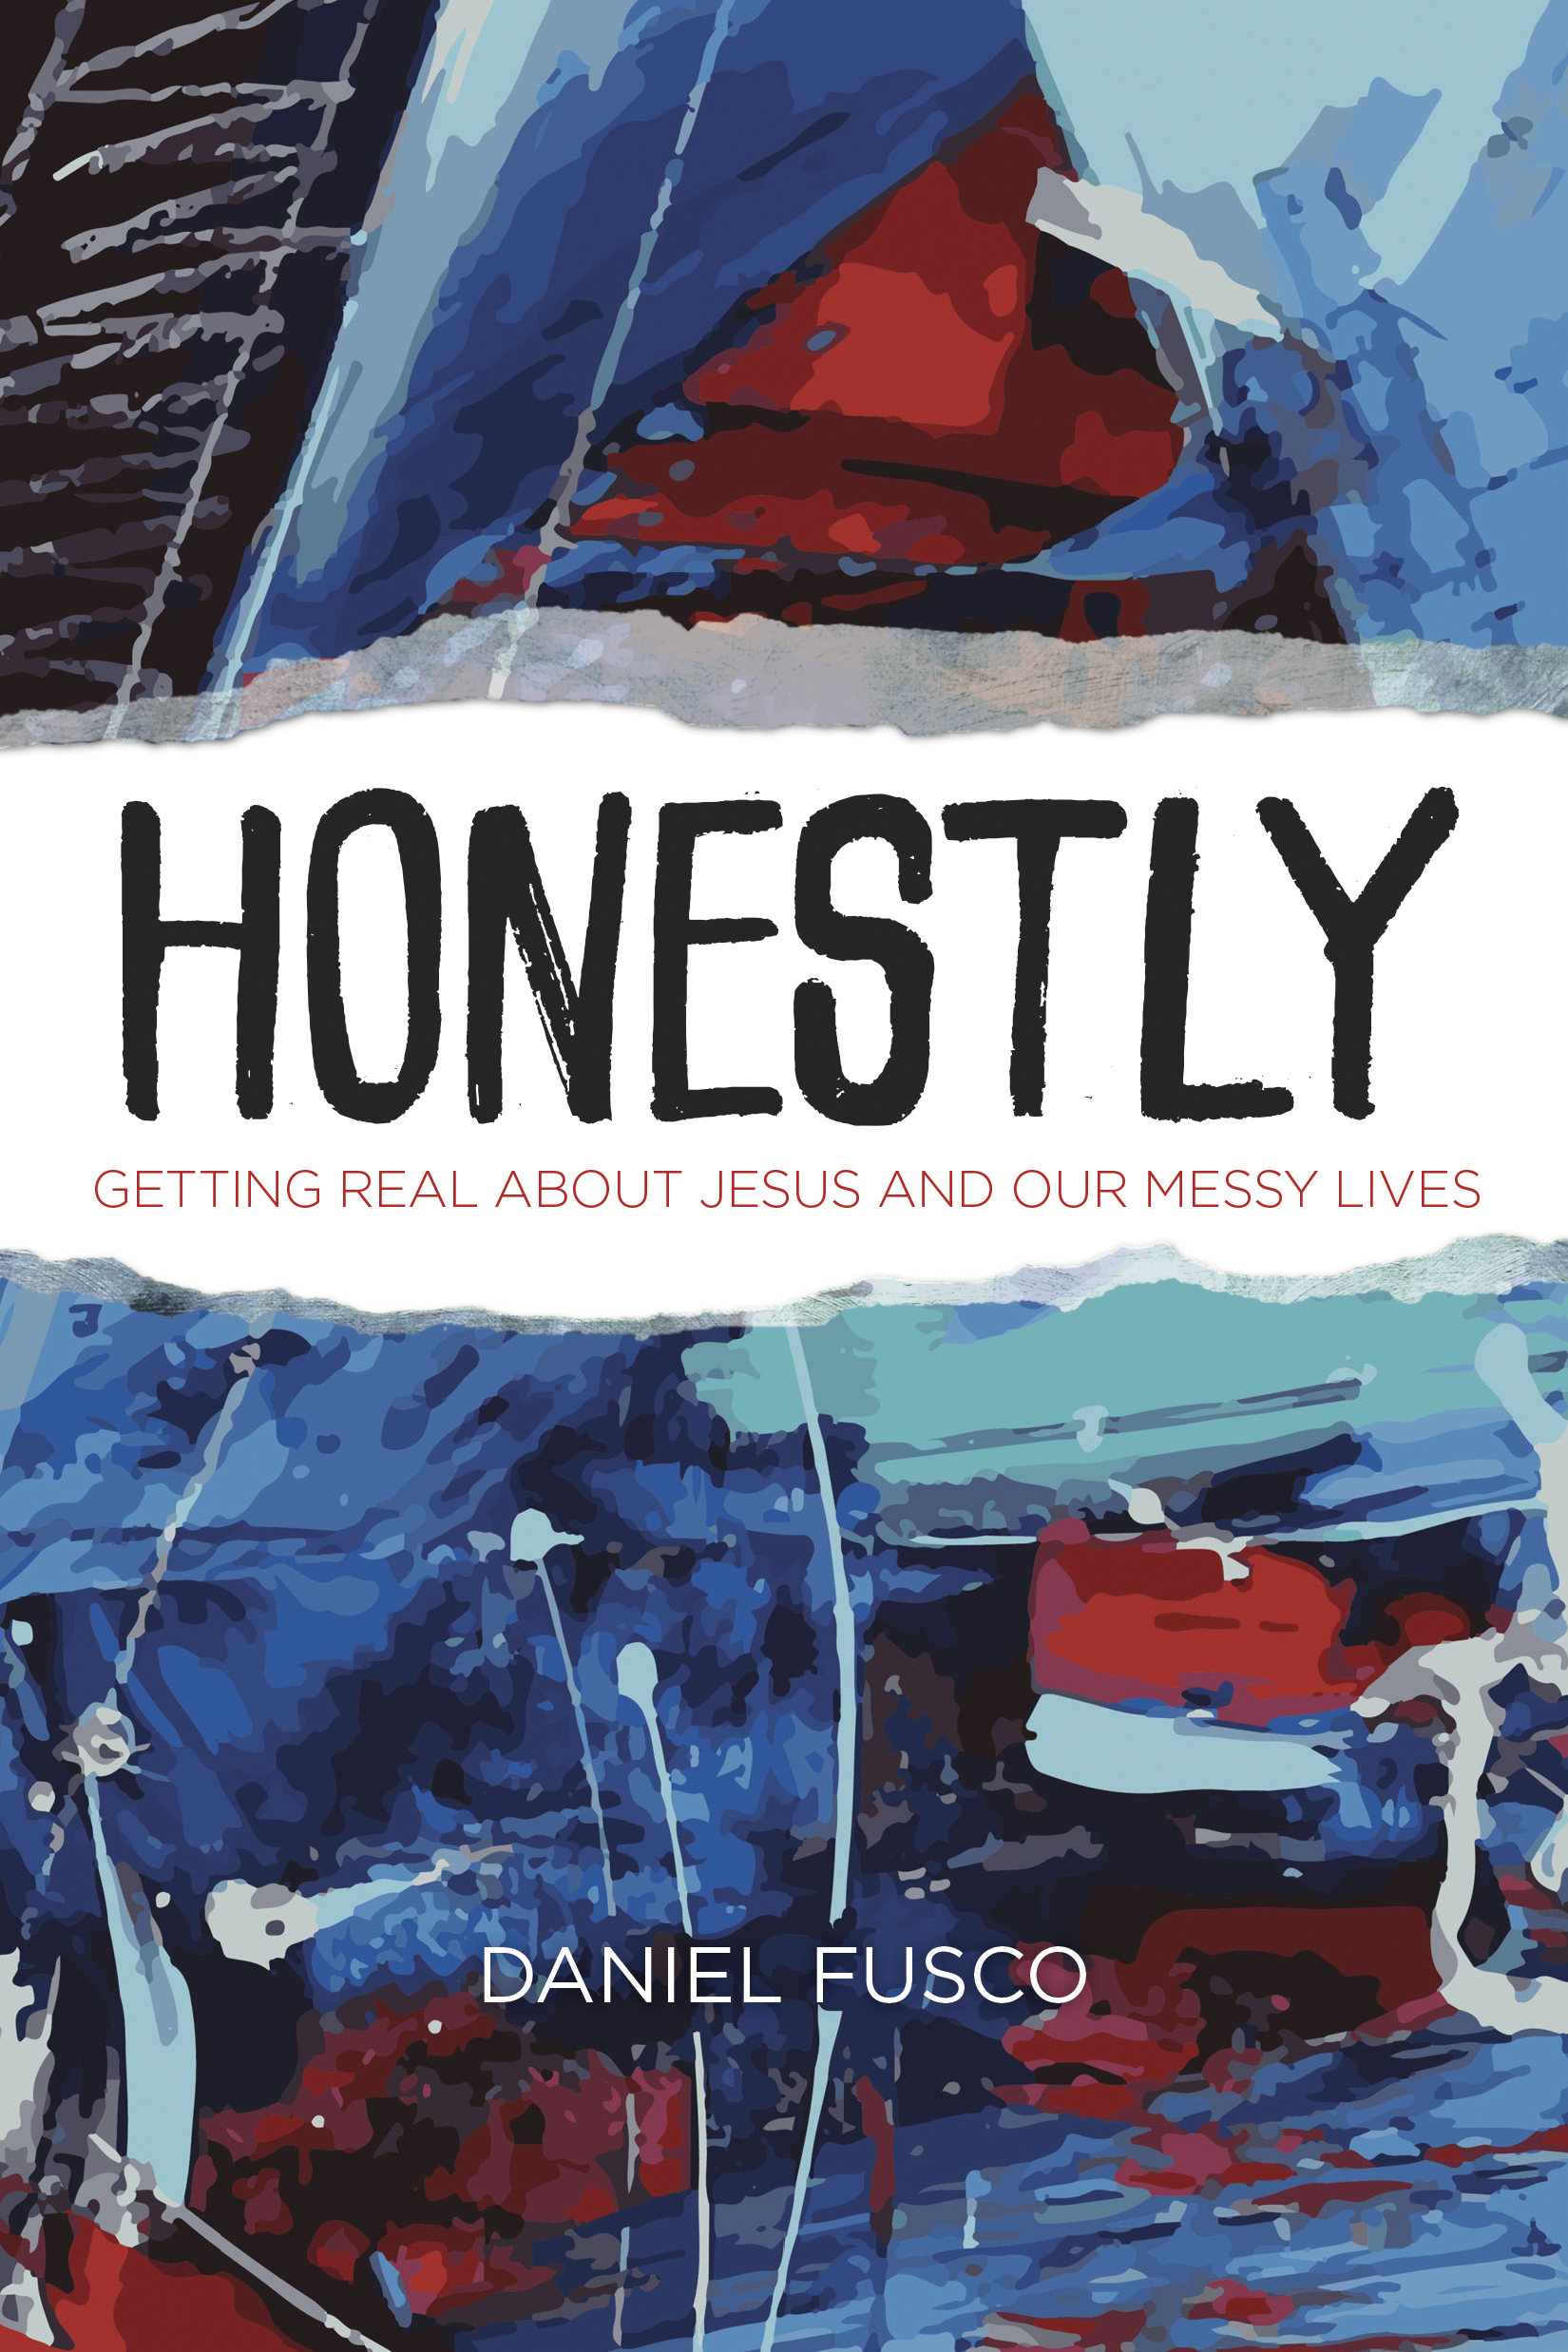 Cover of Honestly, by Daniel Fusco and D. R. Jacobsen